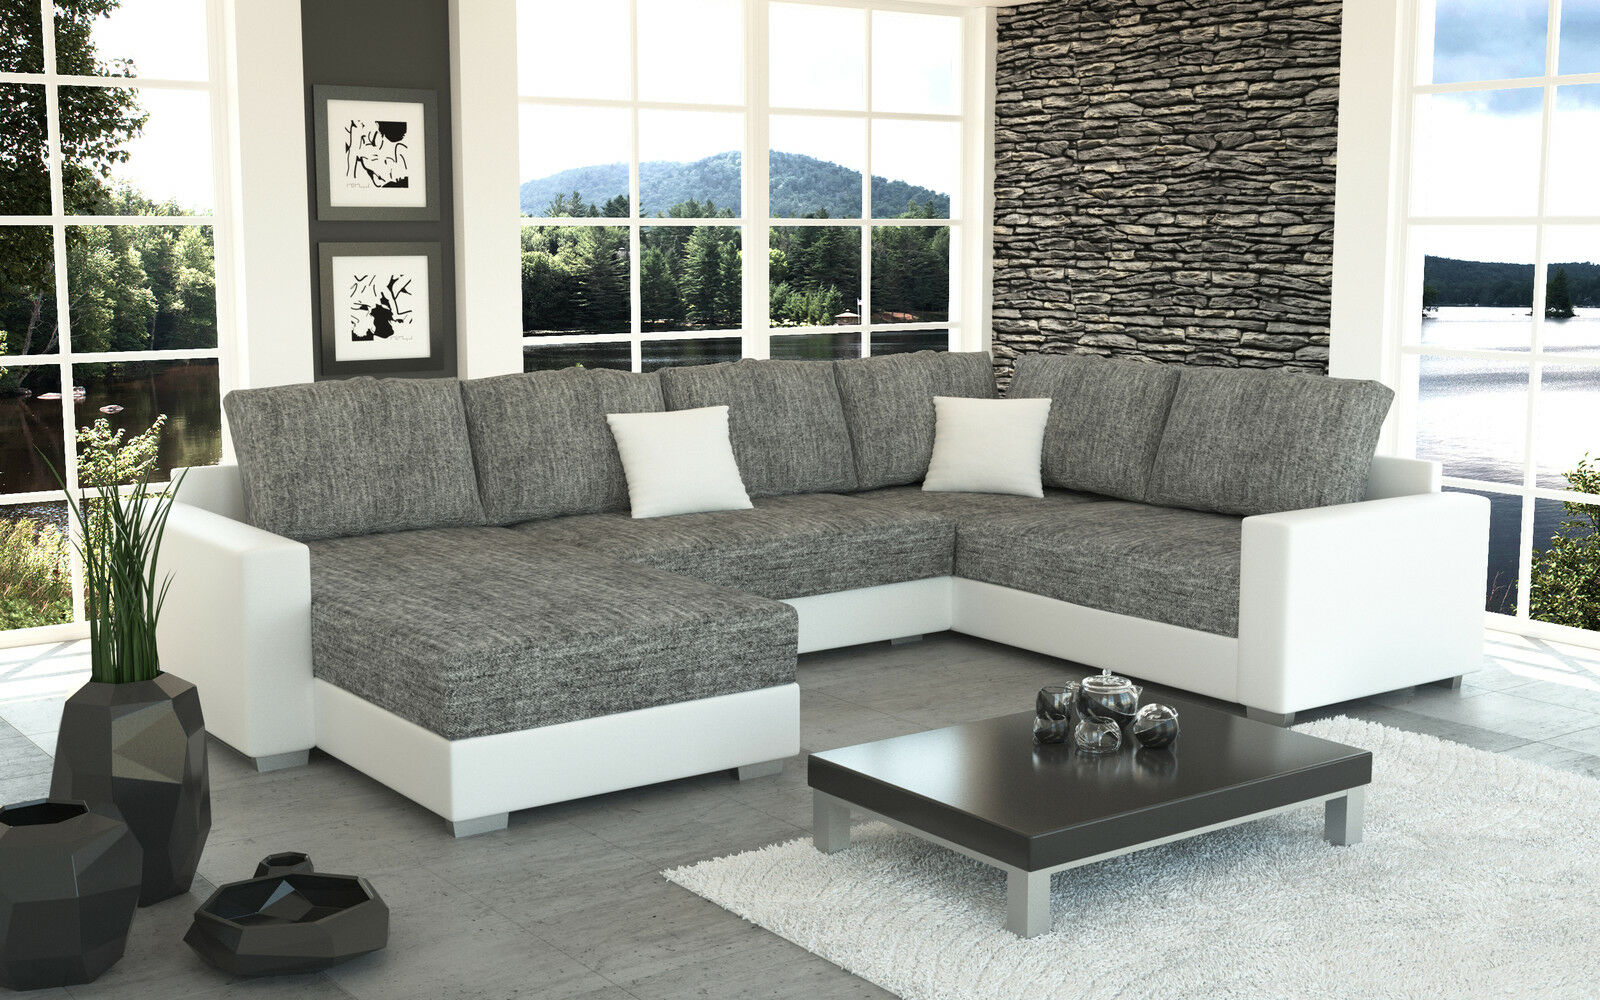 Couch garnitur ecksofa sofagarnitur sofa sty 4 u for Ecksofa couch